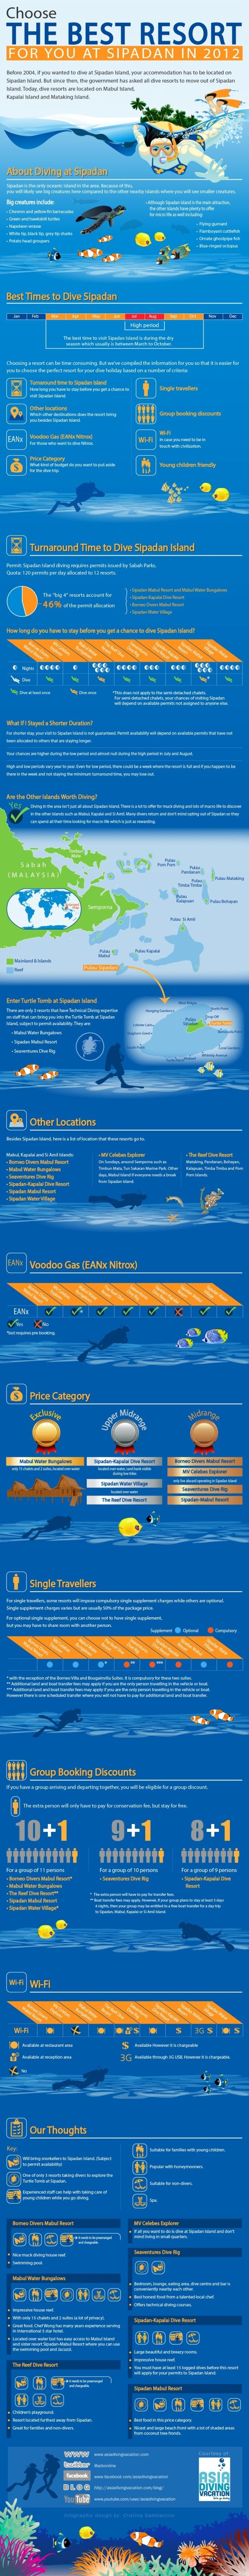 Choosing which resort to stay at in Sipadan Island when you plan your dive trip can be time consuming. We thought we'd put together an infographic t